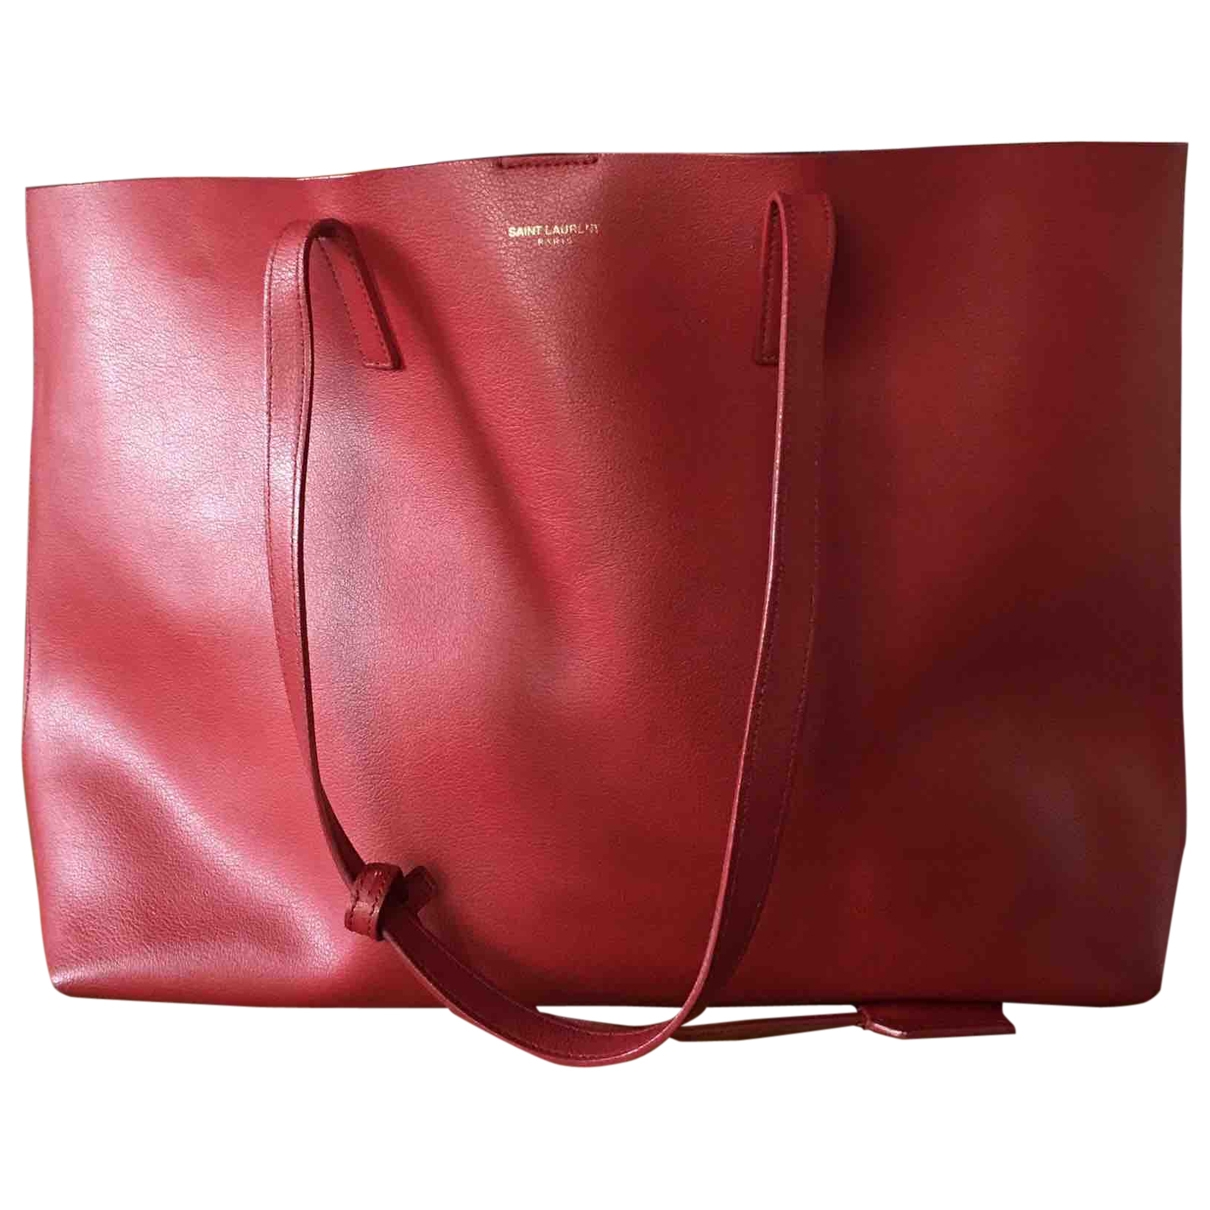 Saint Laurent Shopping Red Leather handbag for Women \N